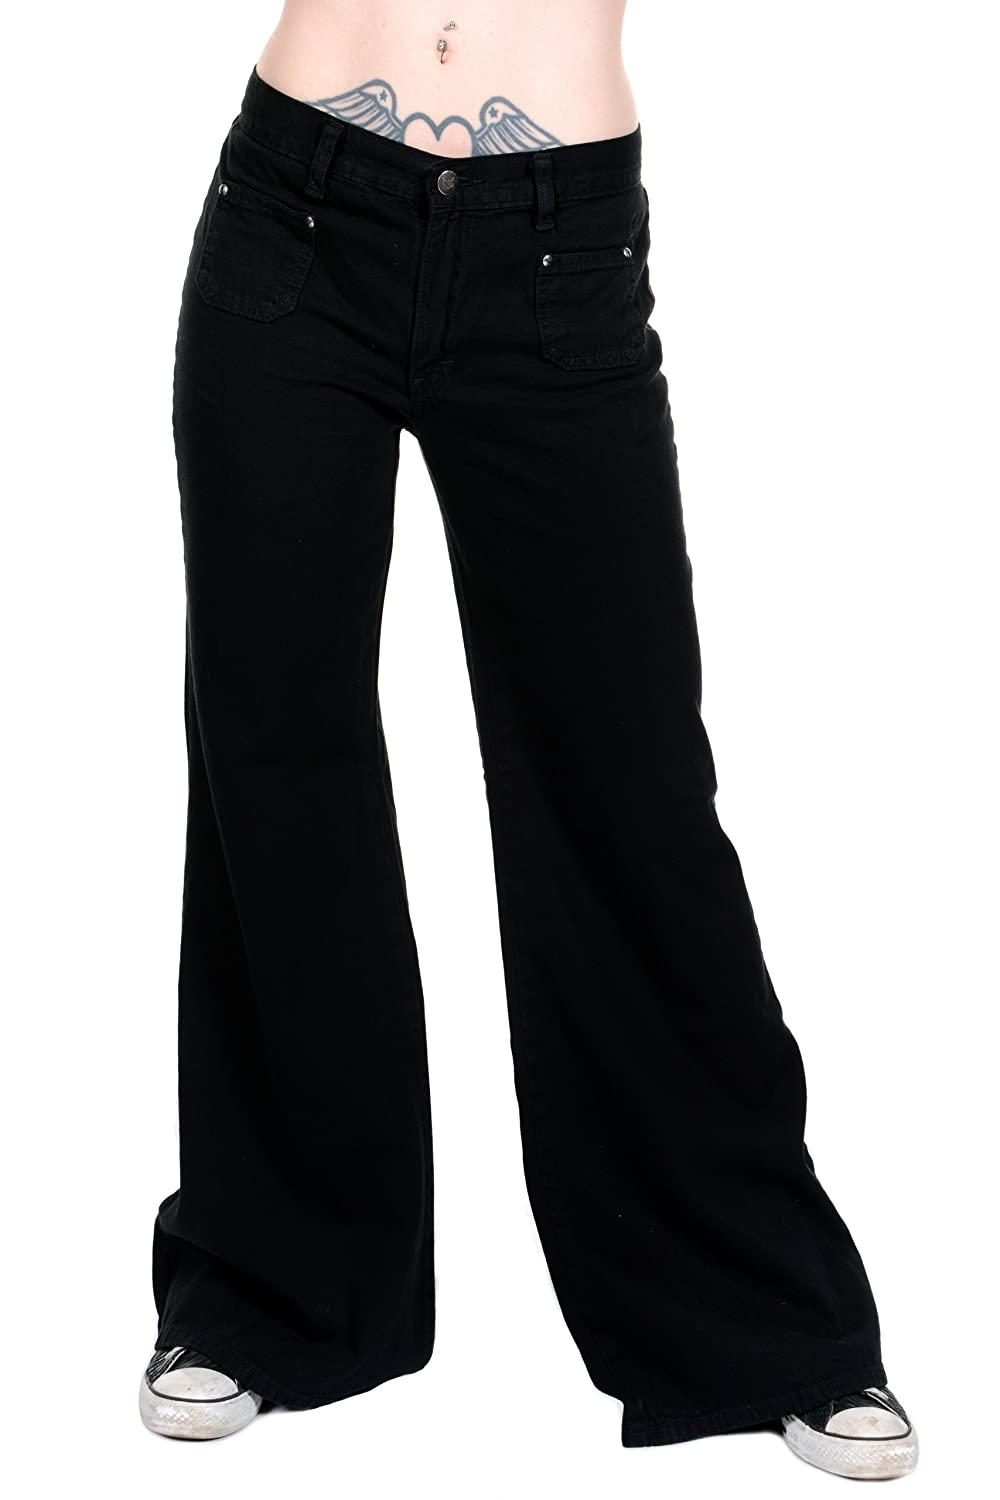 Hippie Pants, Jeans, Bell Bottoms, Palazzo, Yoga  60s 70s Disco New Vintage Hipster Hippy Black Bellbottom Wide Leg Flared Jeans Run & Fly Ladies Womens Retro £29.99 AT vintagedancer.com